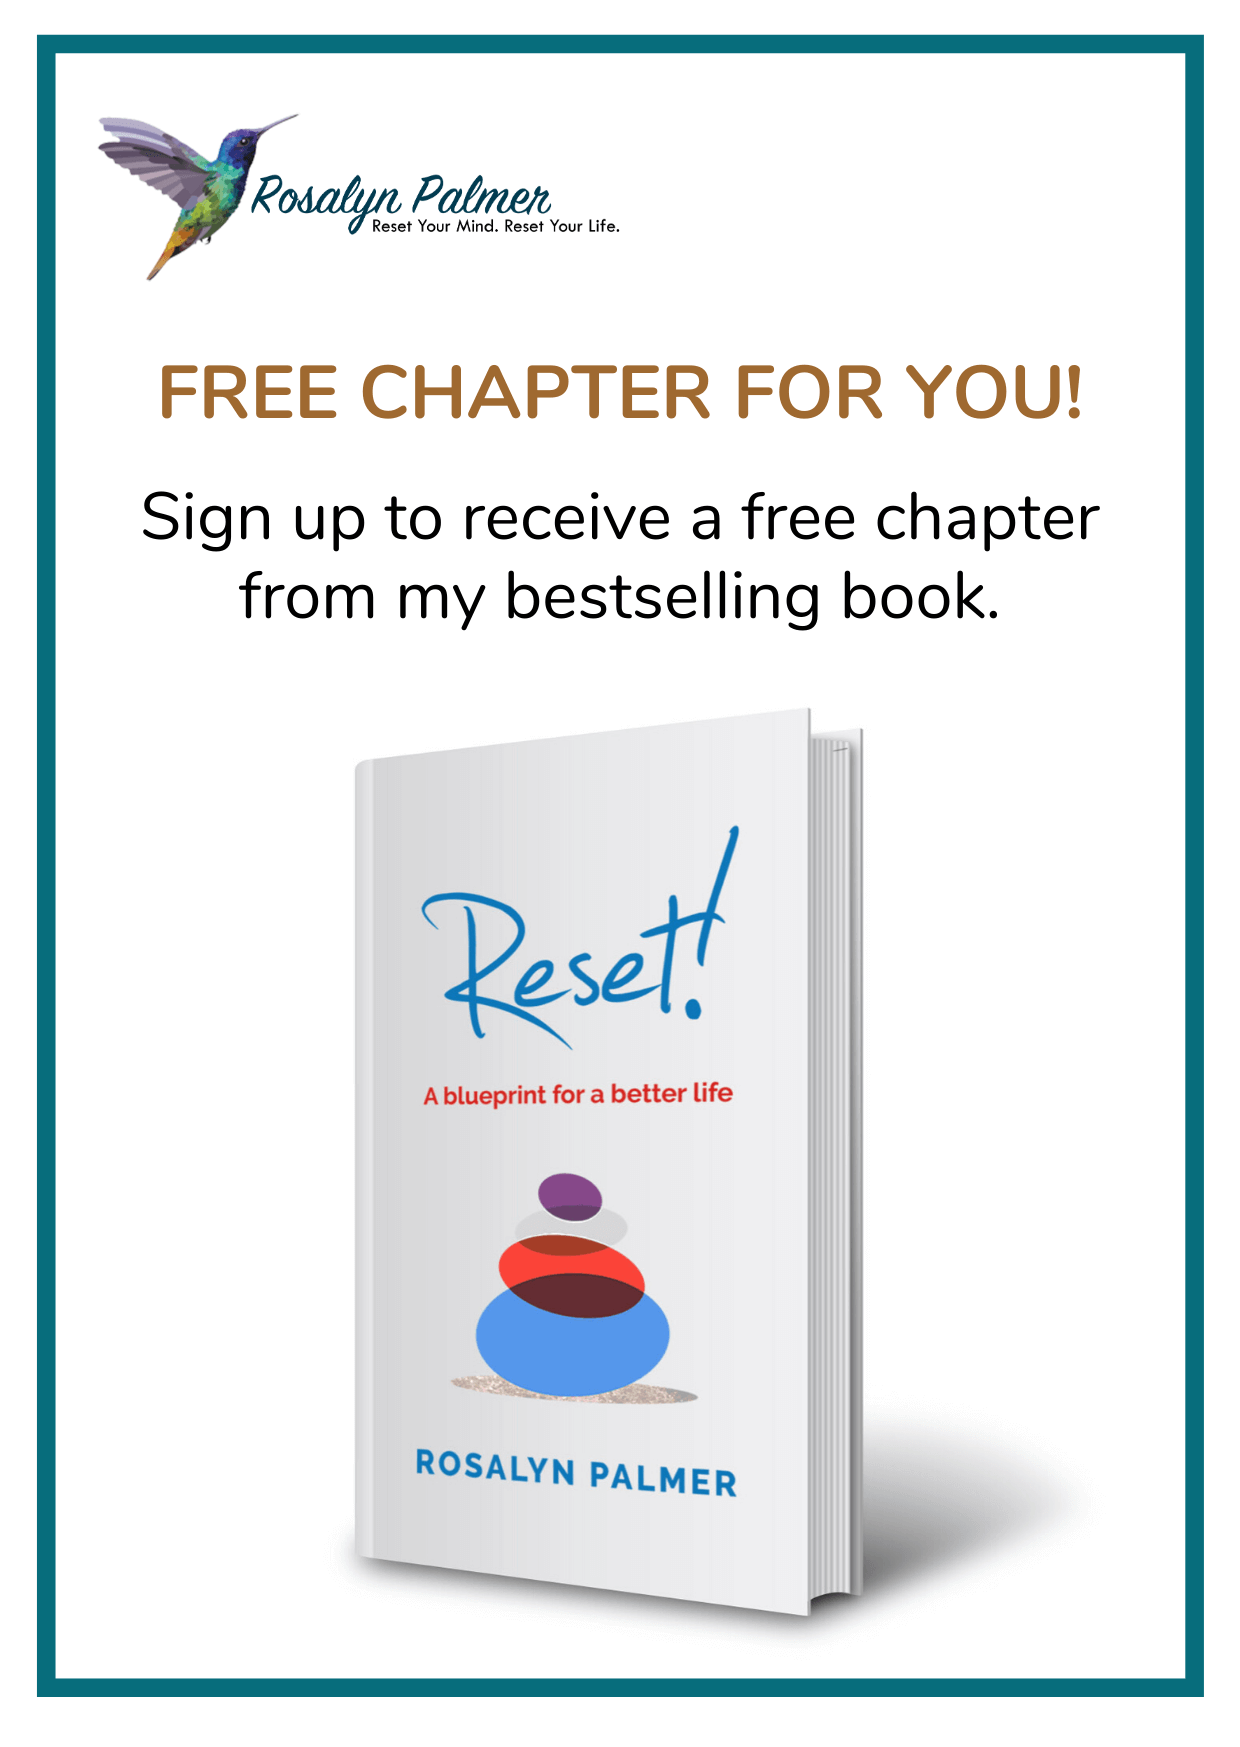 Reset!: A blueprint for a better life by Rosalyn Palmer (Front cover)